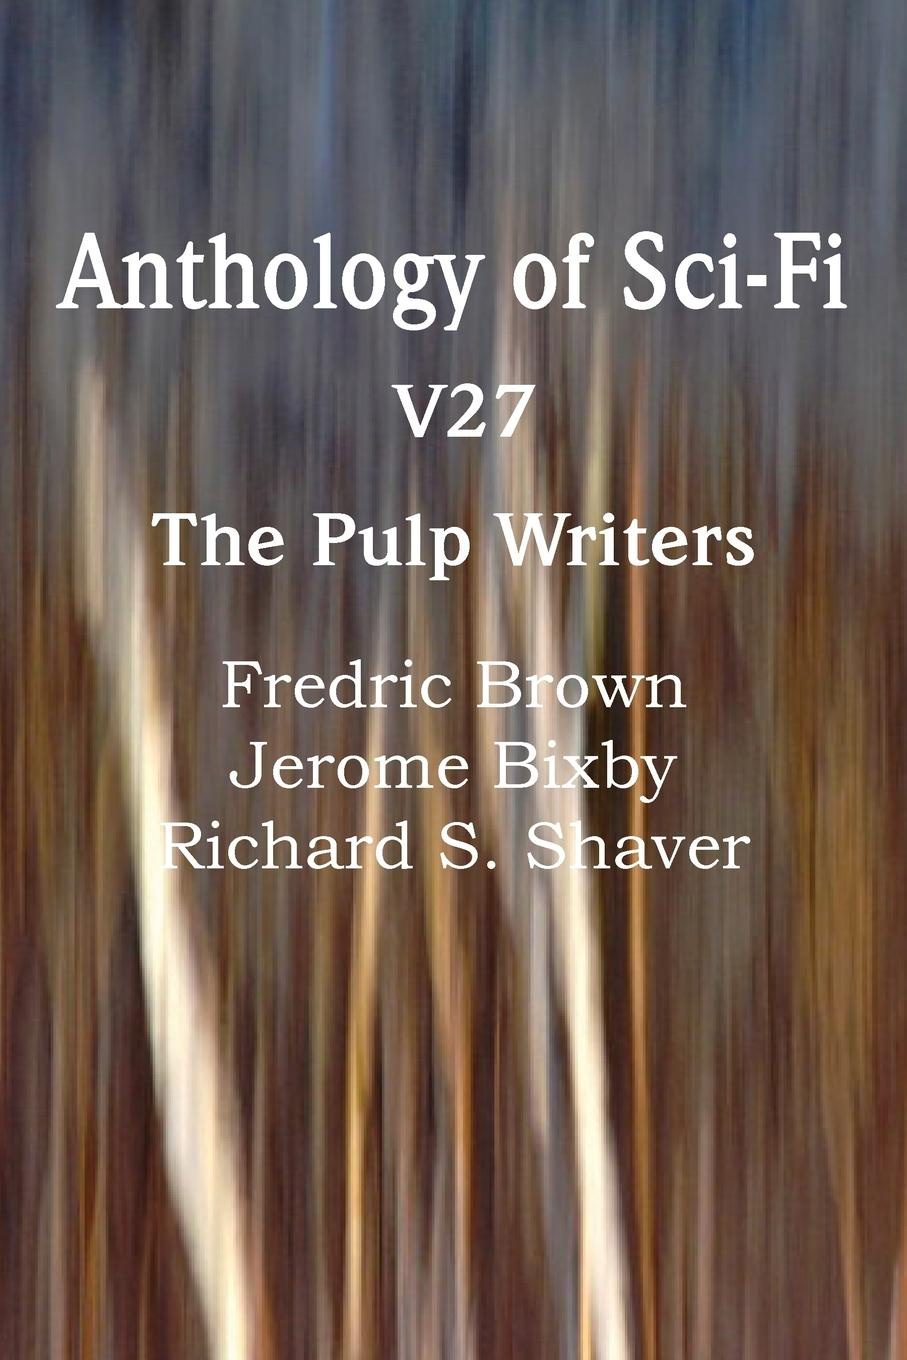 Fredric Brown, Jerome Bixby, Richard S. Shaver Anthology of Sci-Fi V27, the Pulp Writers burton wb bixby down